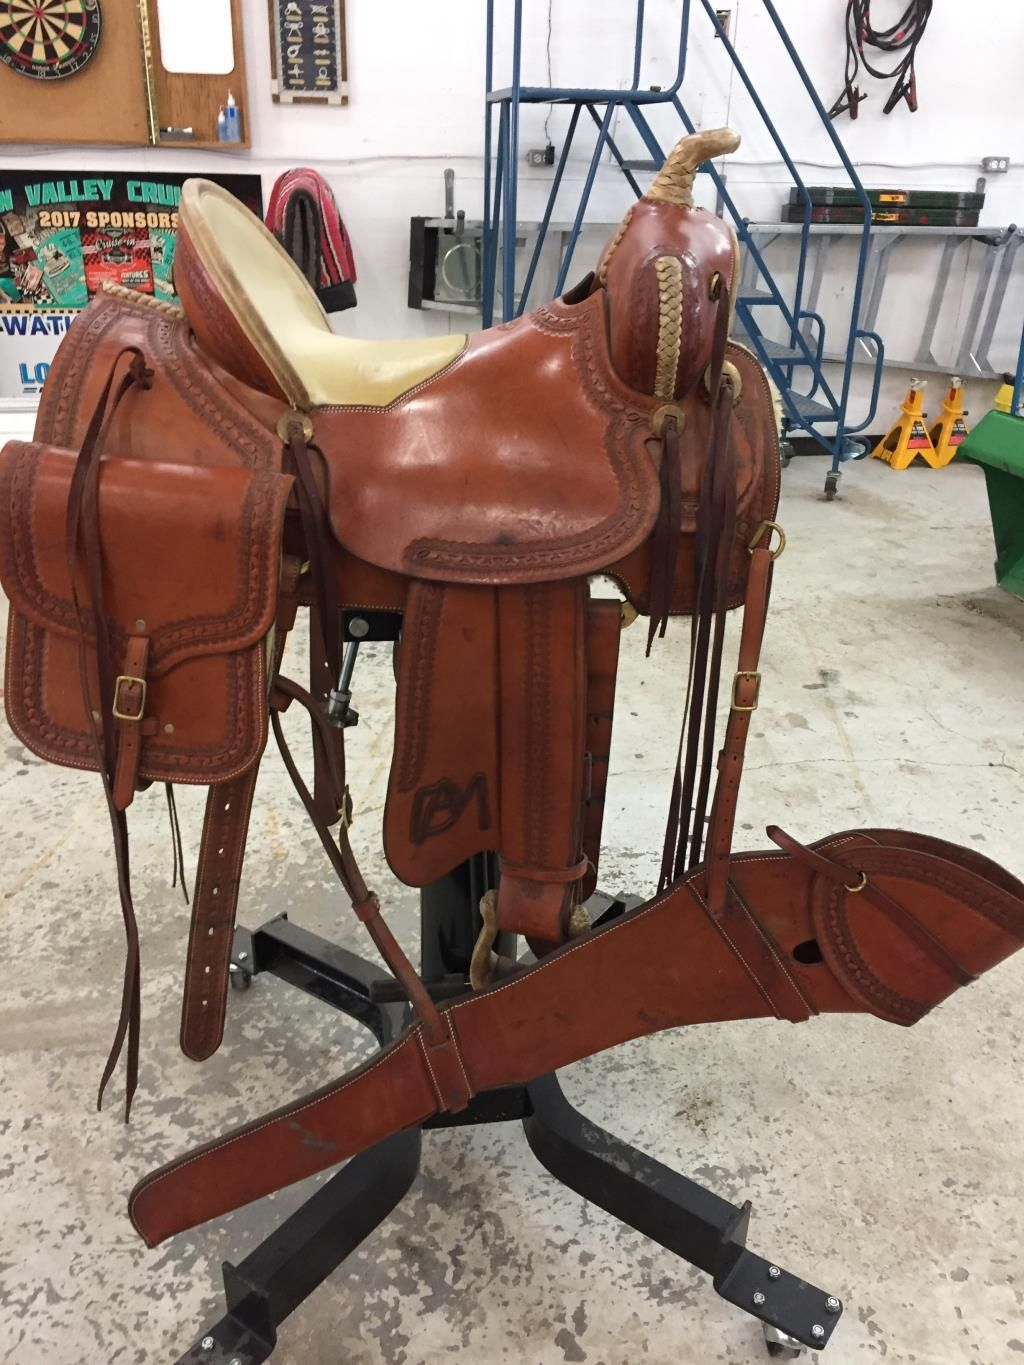 Western Saddle Package Custom P Banzet For Sale In Alberta 16 Inch Custom Made Paul Banzet Sadd Saddle Bags Horse Western Saddles For Sale Saddles For Sale